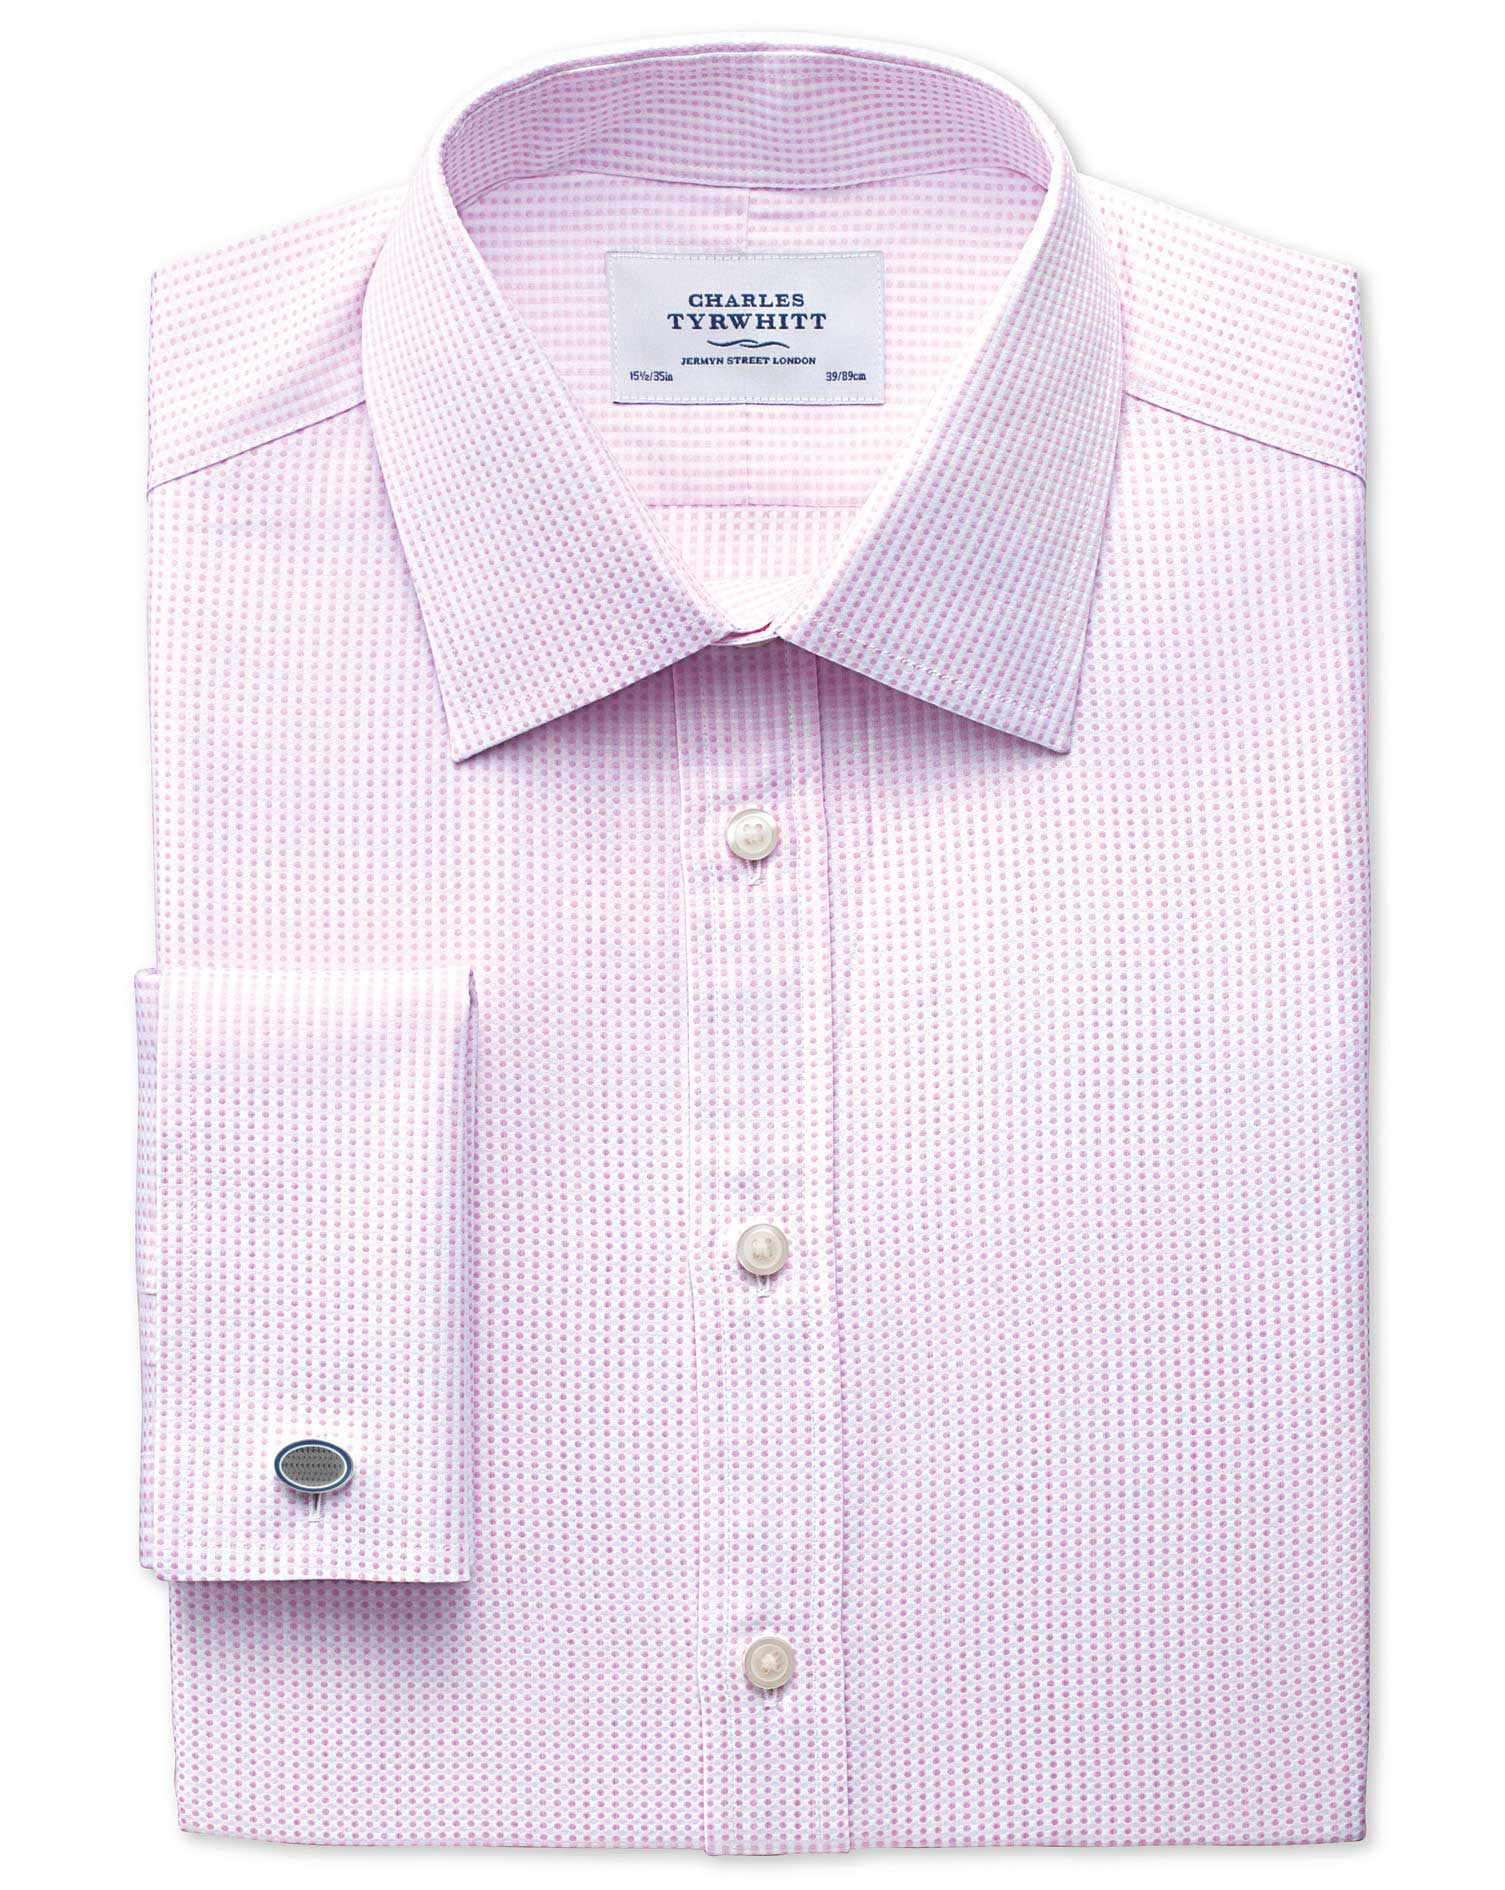 Extra Slim Fit Pima Cotton Double-Faced Light Pink Formal Shirt Double Cuff Size 15.5/36 by Charles